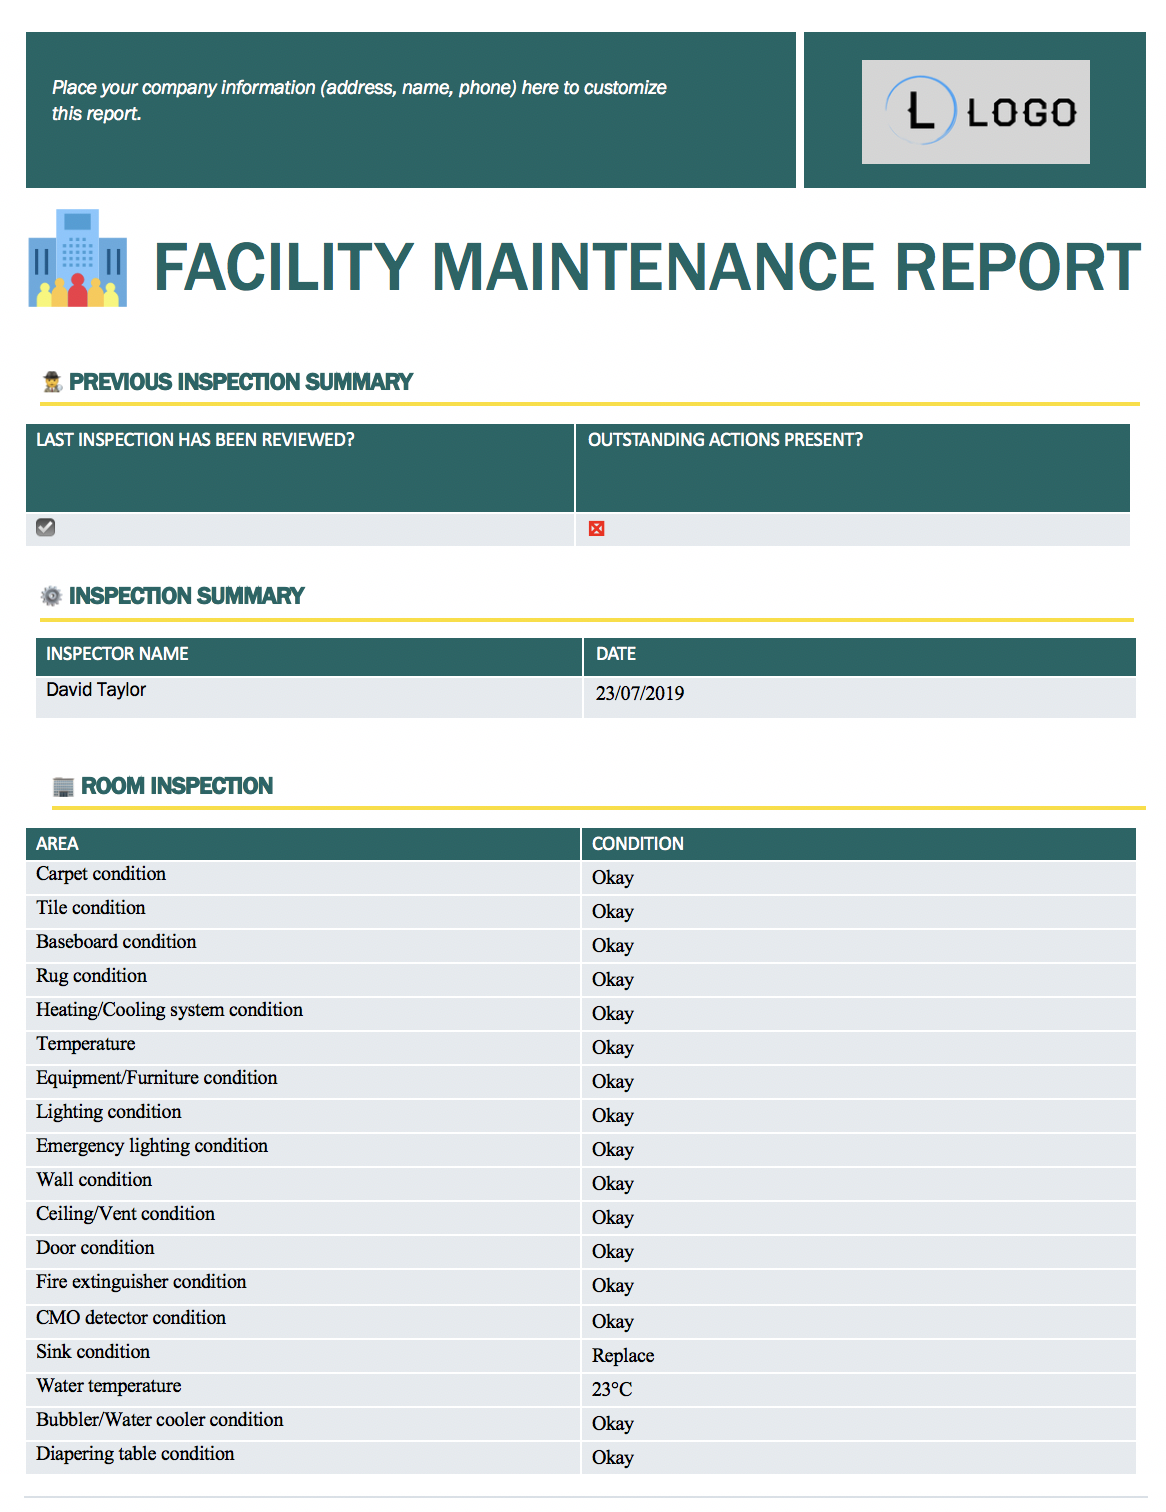 Facility maintenance inspection report example with Kizeo Forms